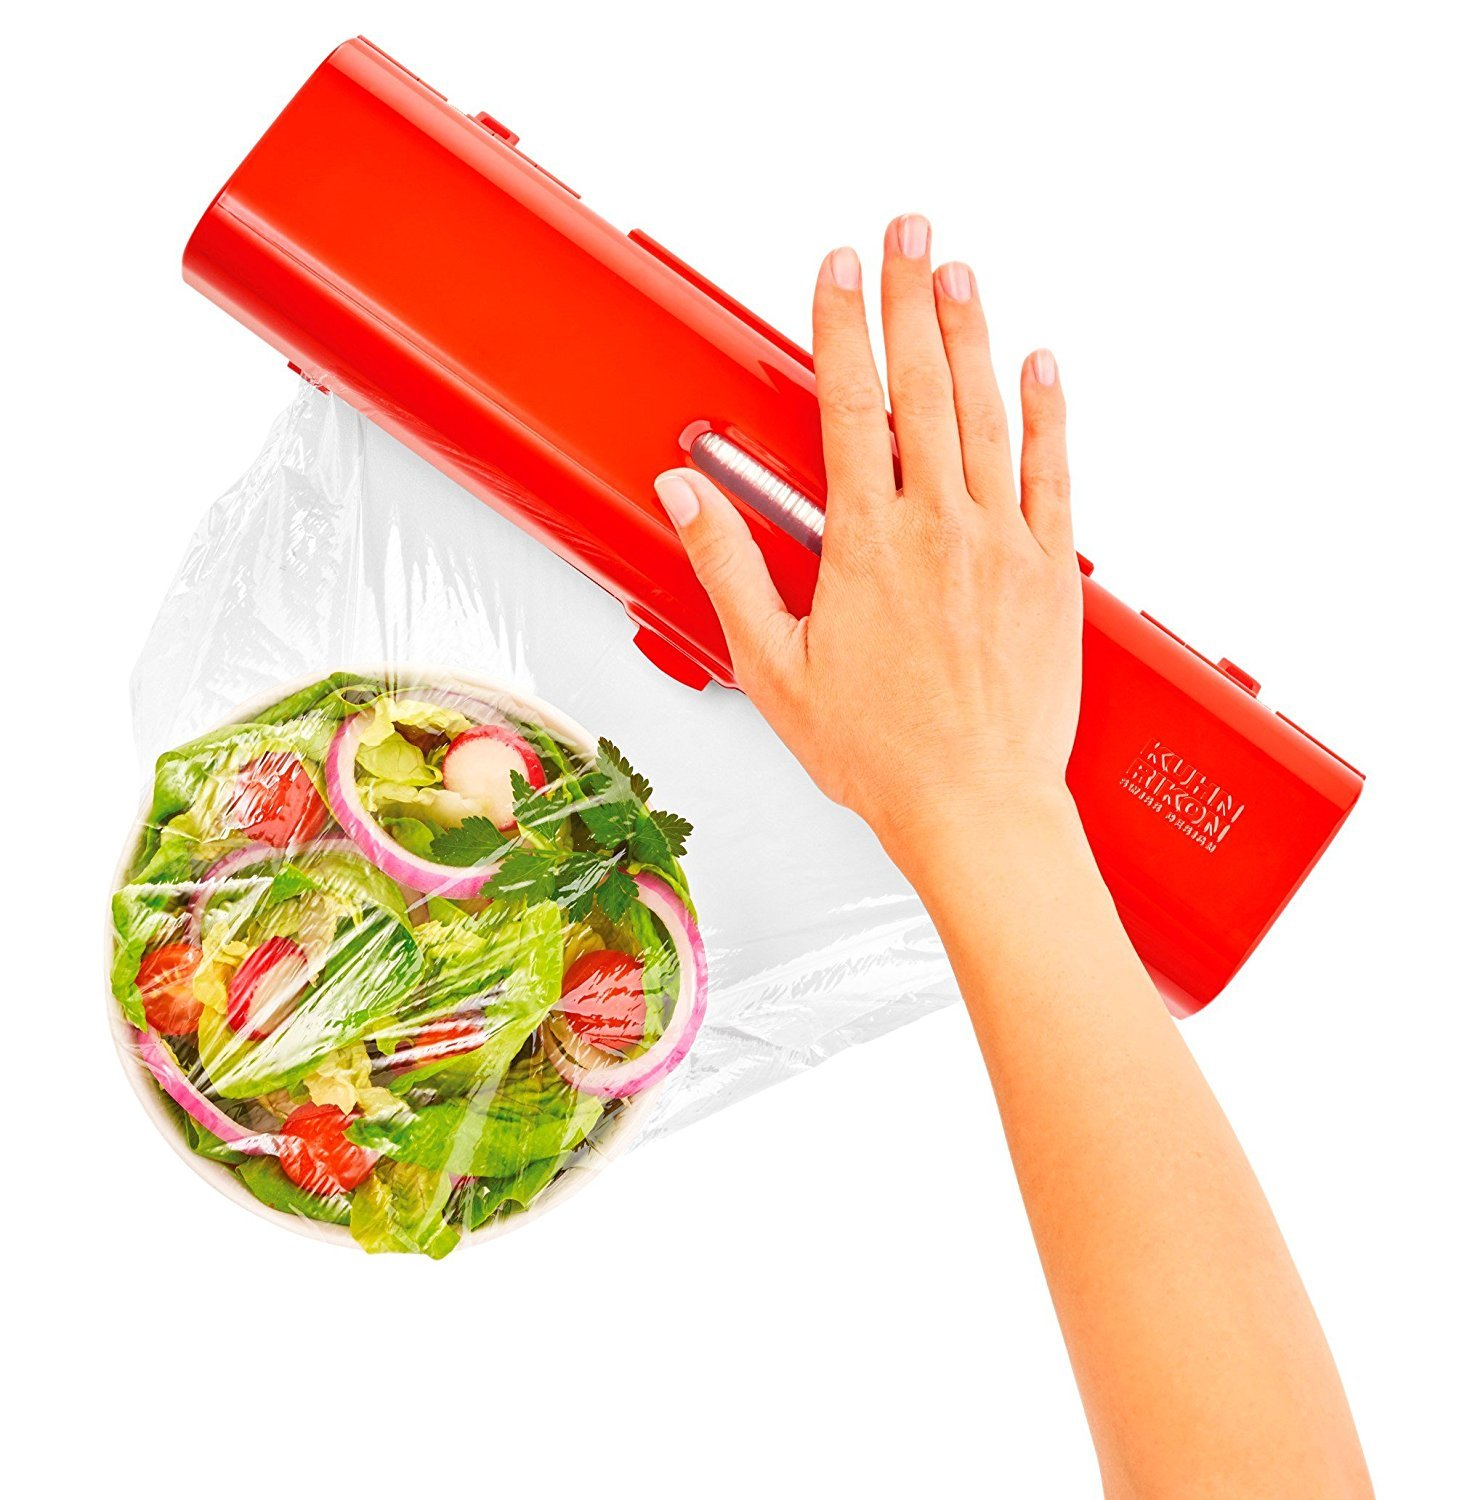 Cling Film - Primary Packaging